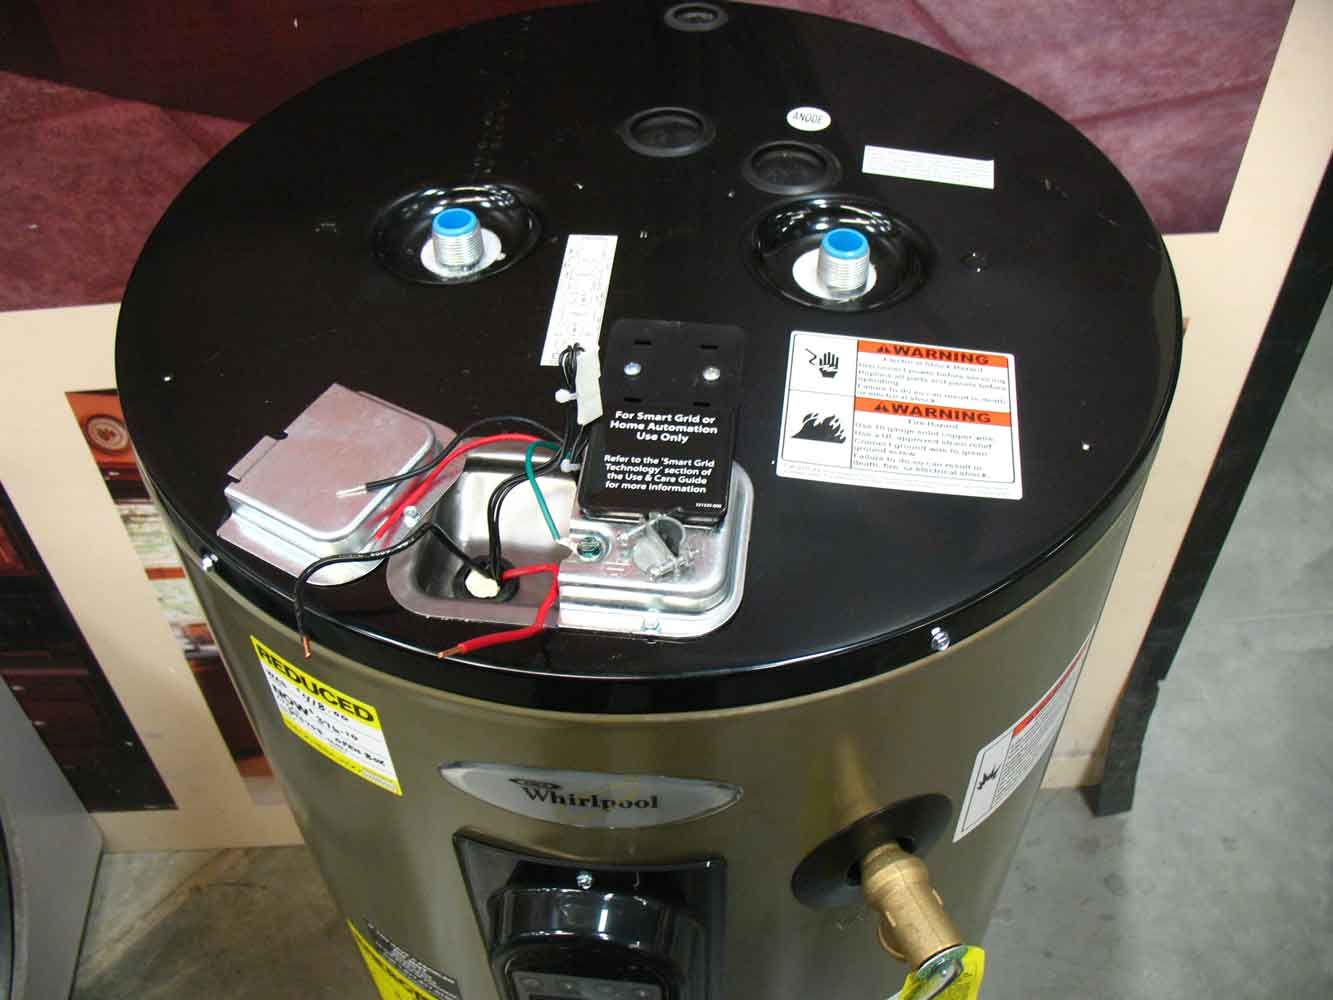 Index Of Images Purchased A 3wayge Sunsmart Digital Inwall Timer It Comes Energy Smart Img 258